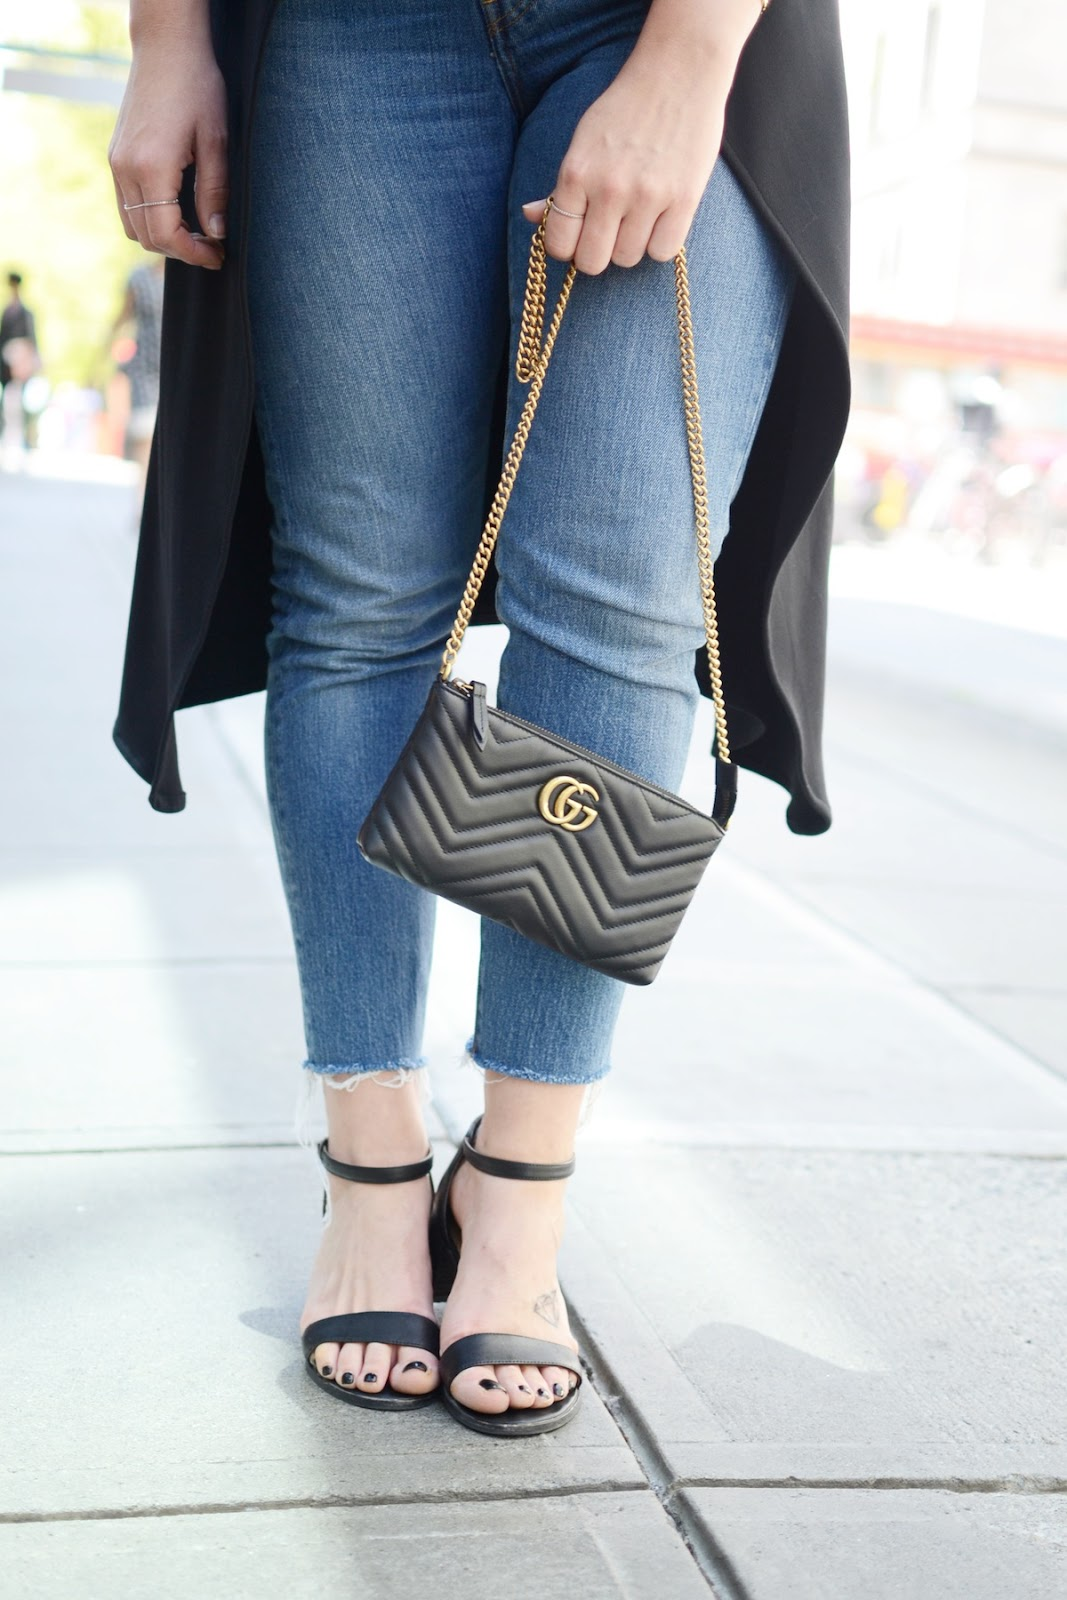 Le Chateau waterfall vest and sandals quay australia gucci marmont wallet on a chain vancouver blogger